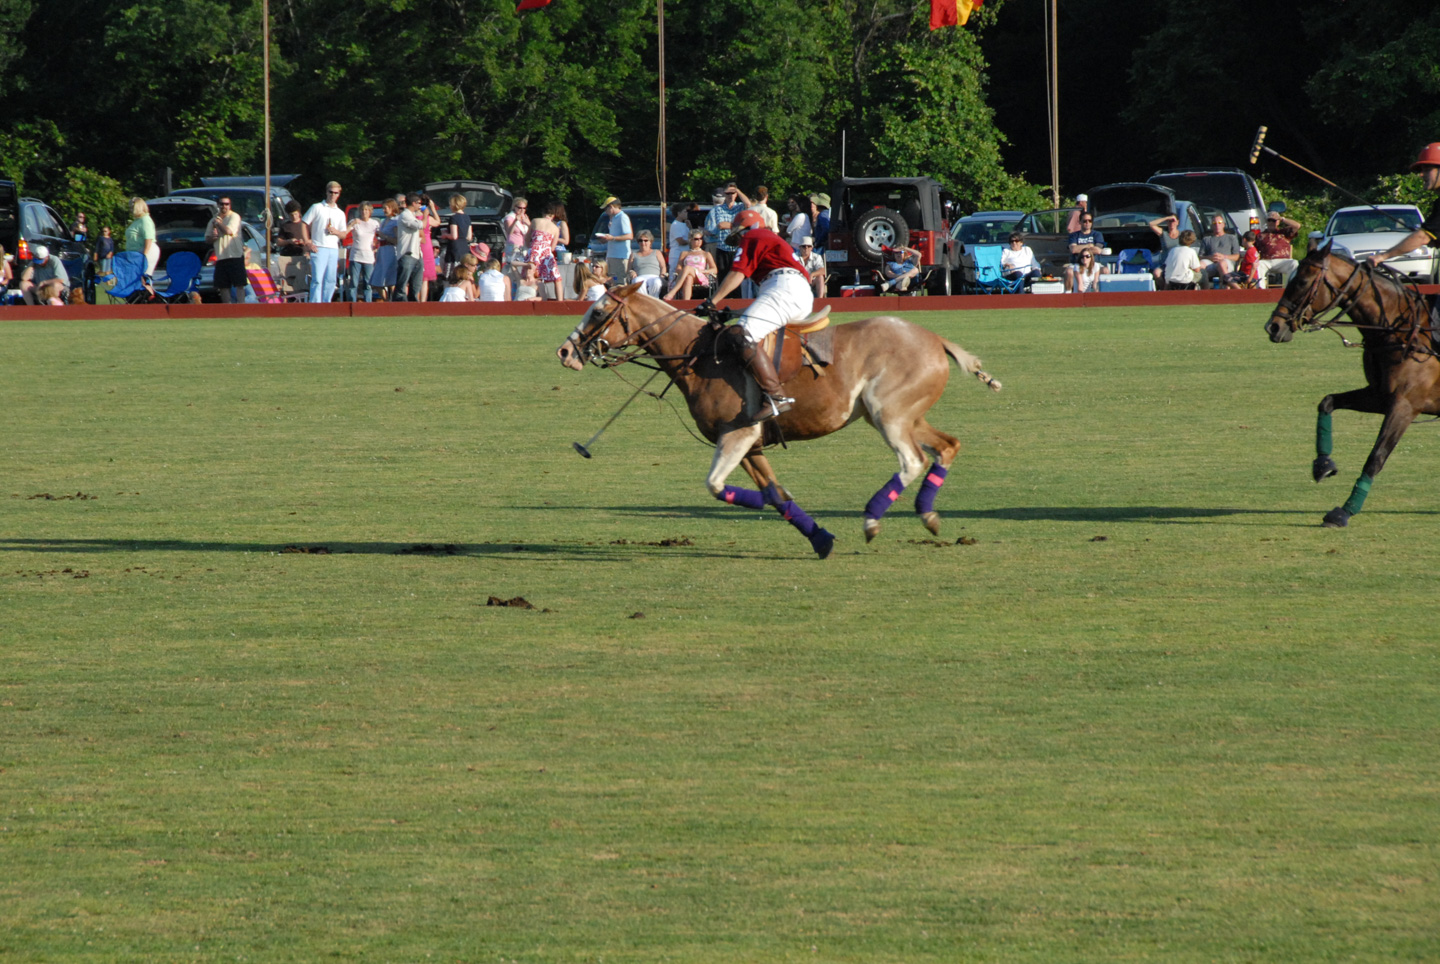 Polo action shot